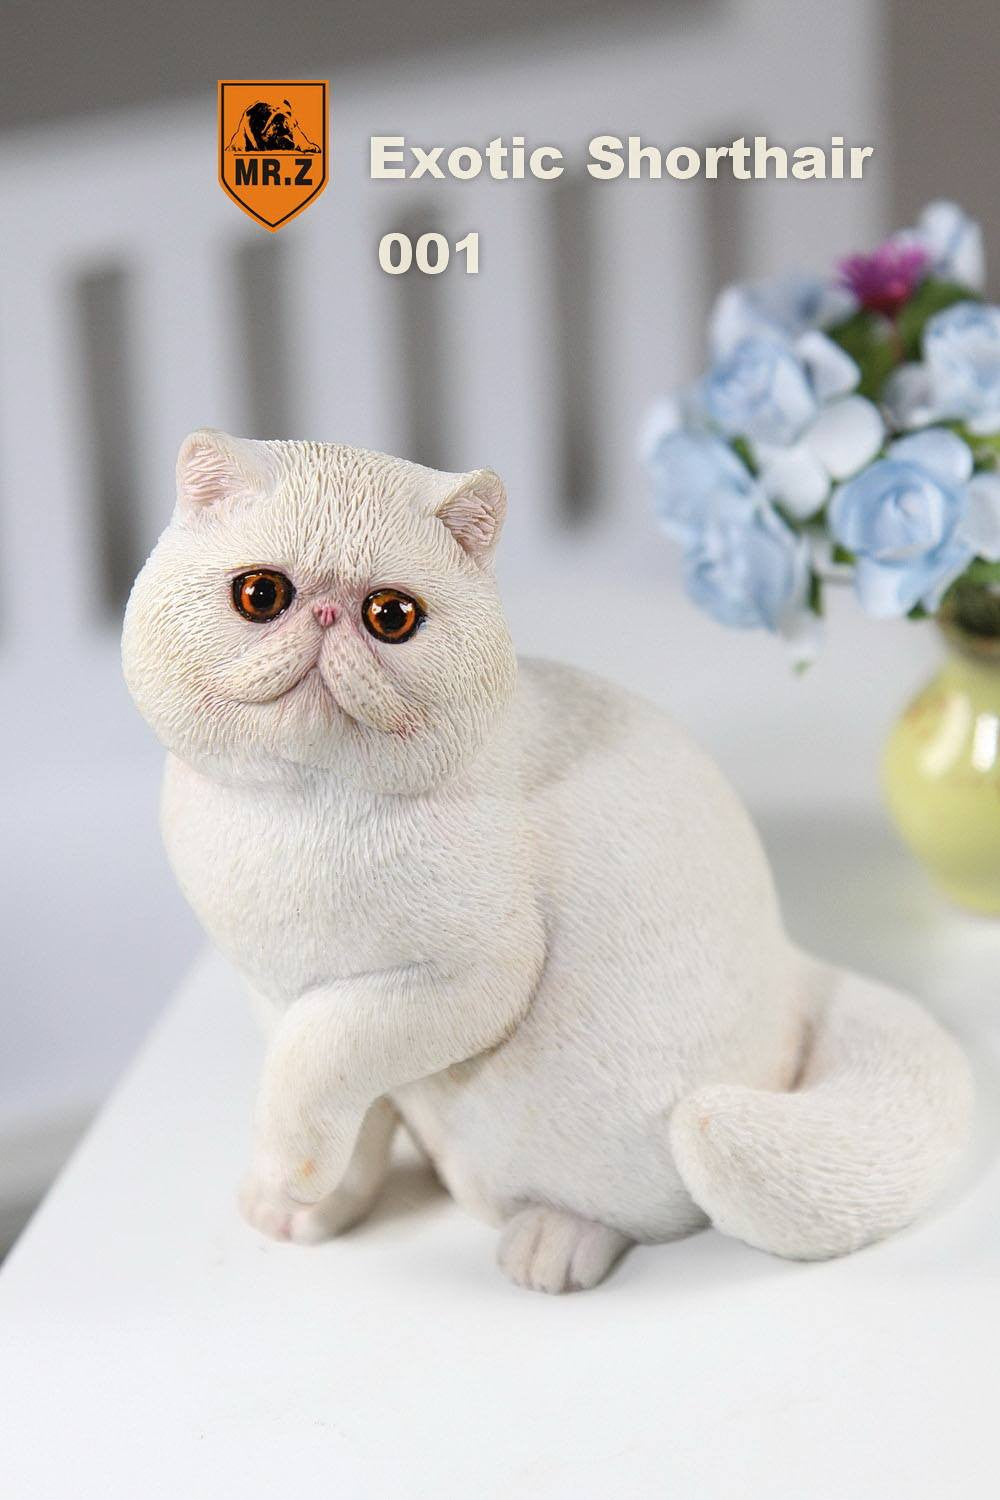 MR.Z - Real Animal Series No.8 - 1/6th Scale Exotic Shorthair Cat (Garfield) 001-005 - Marvelous Toys - 24